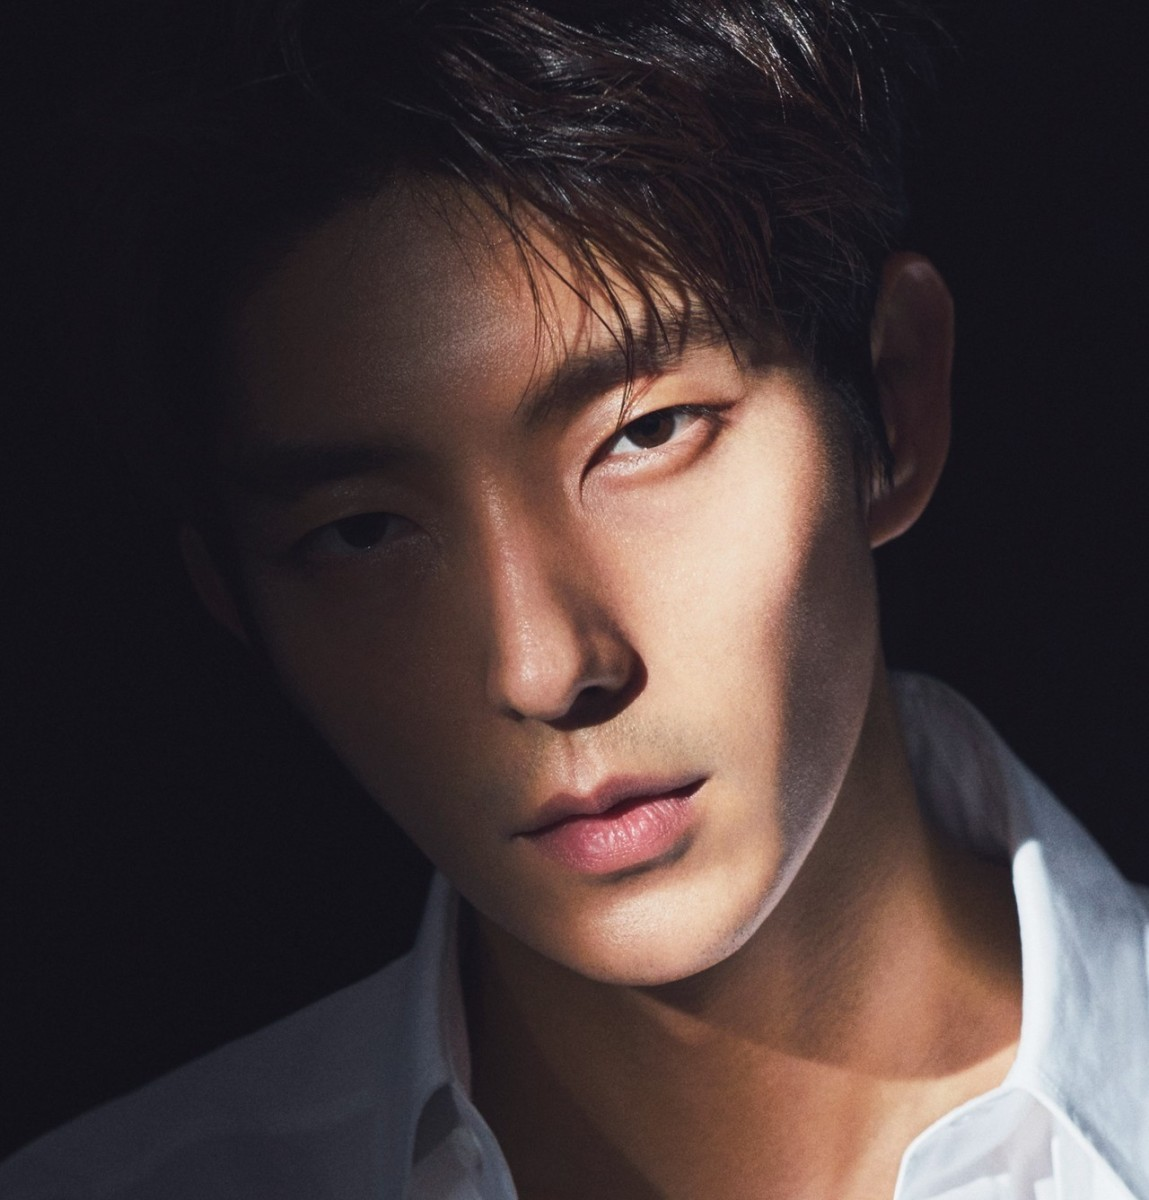 Lee Joon Gi | Top 10 Most Popular and Handsome Korean Drama Actors